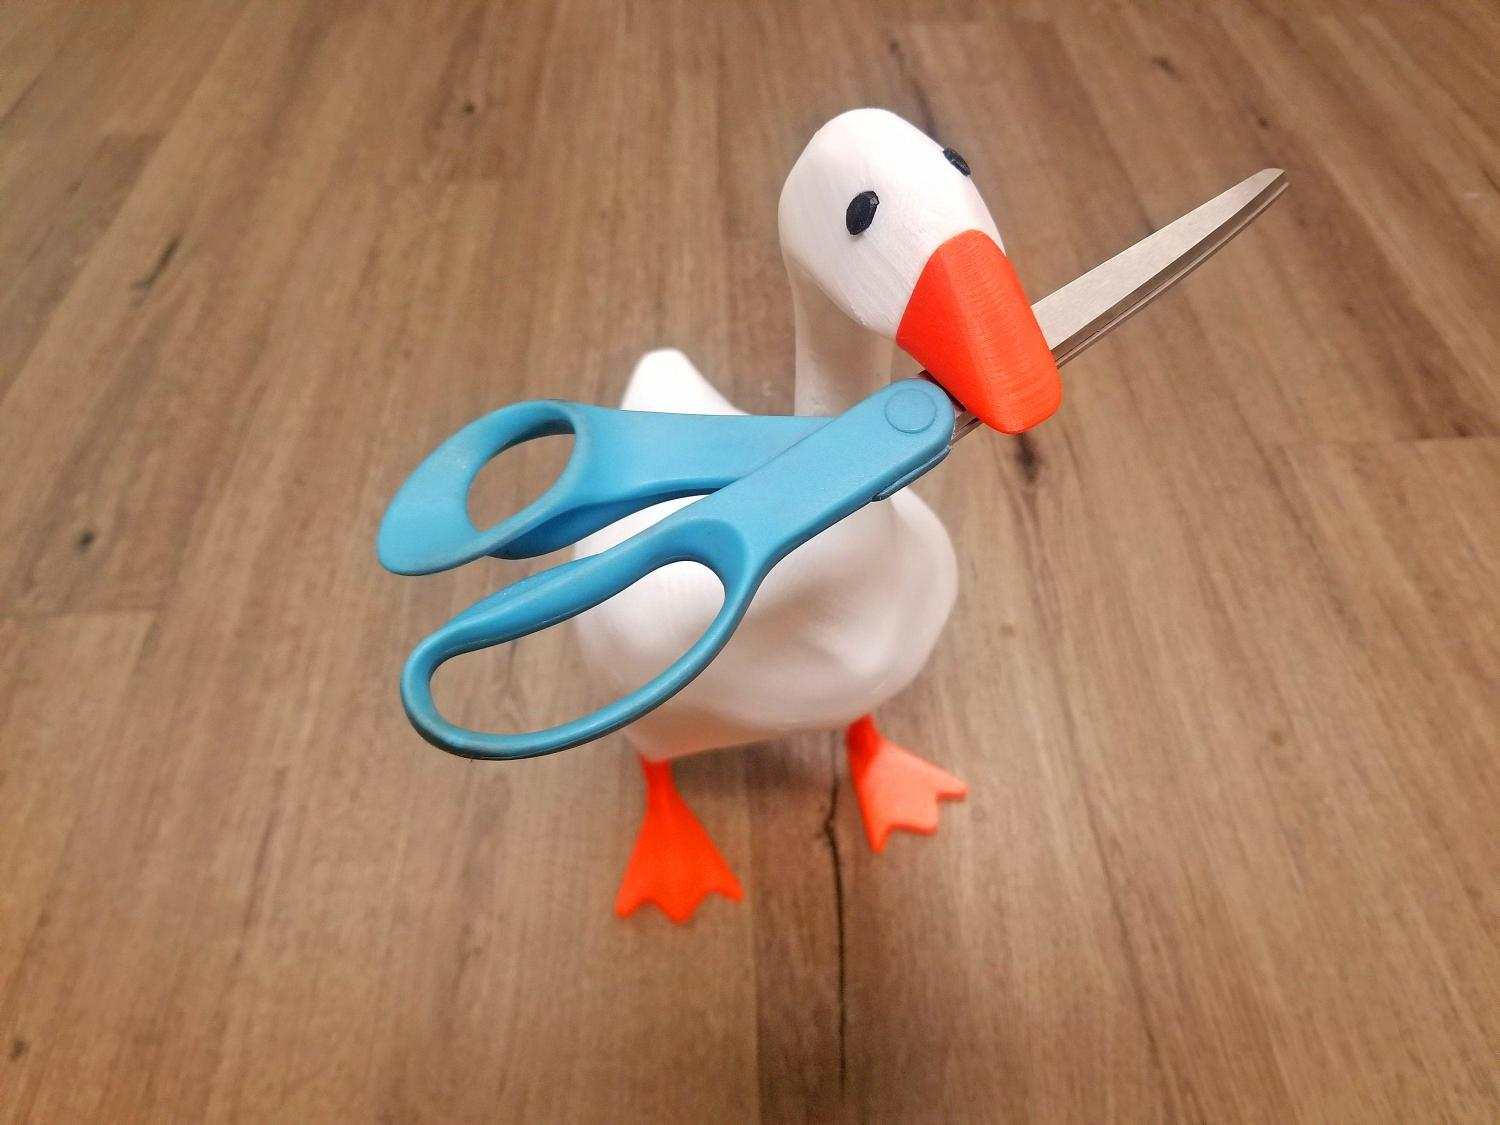 Magnetic Goose - 3D printed goose with magnet in beak